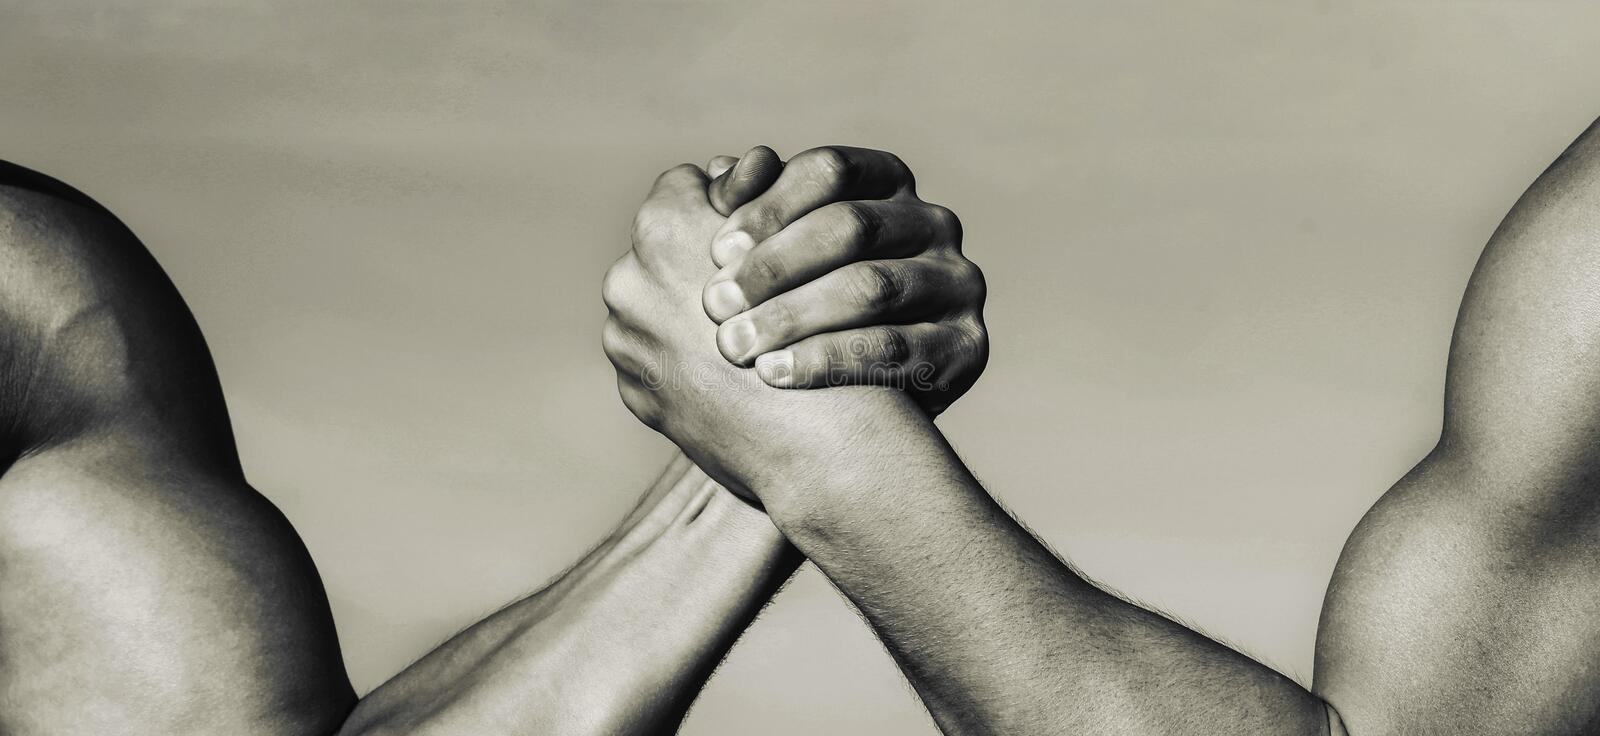 Two muscular hands. Rivalry concept. Hand, rivalry, vs, challenge, strength comparison. Man hand. Two men arm wrestling royalty free stock photo